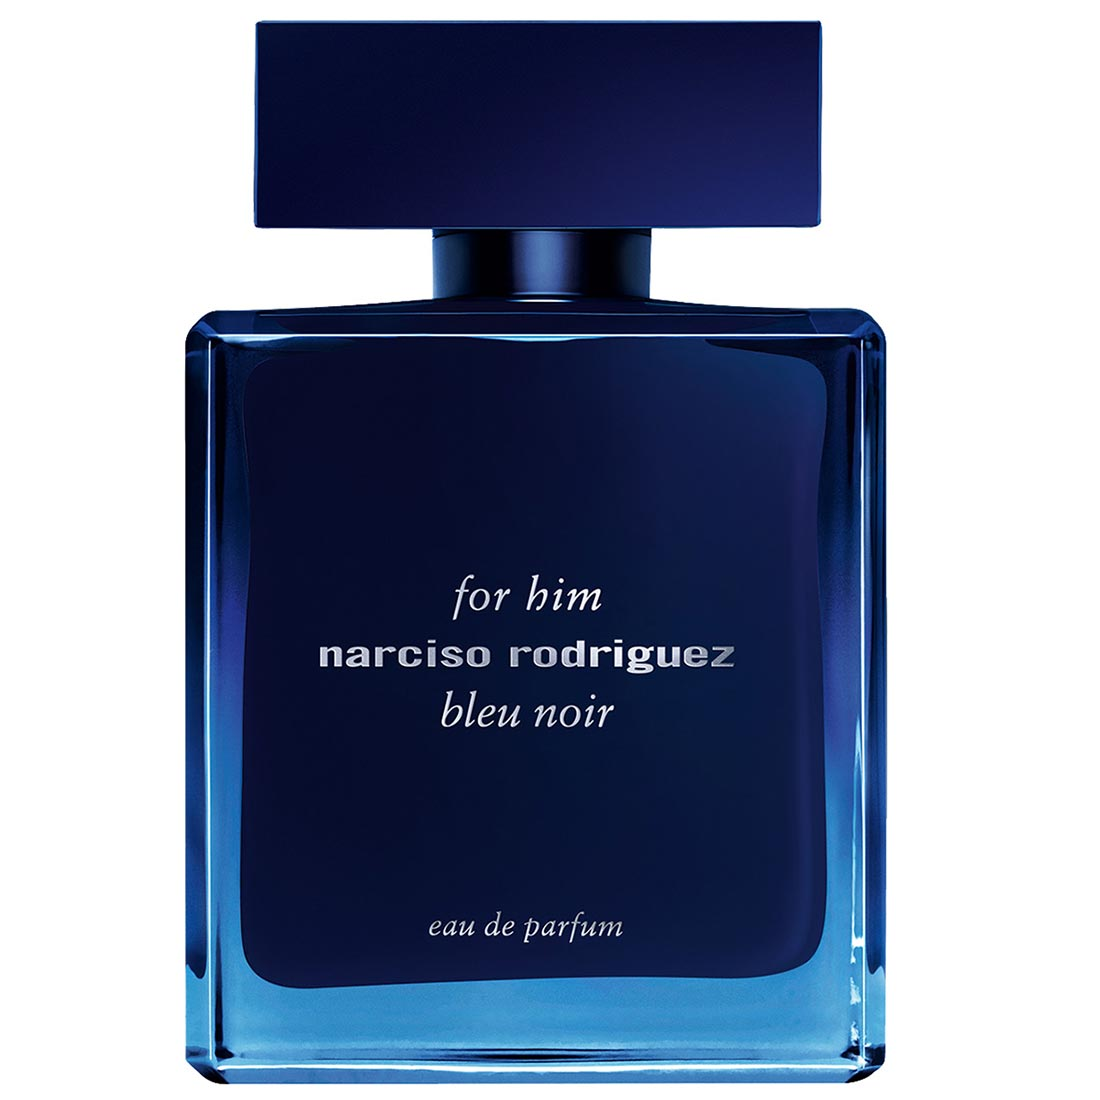 Narciso Rodriguez - for him bleu noir - Eau de parfum